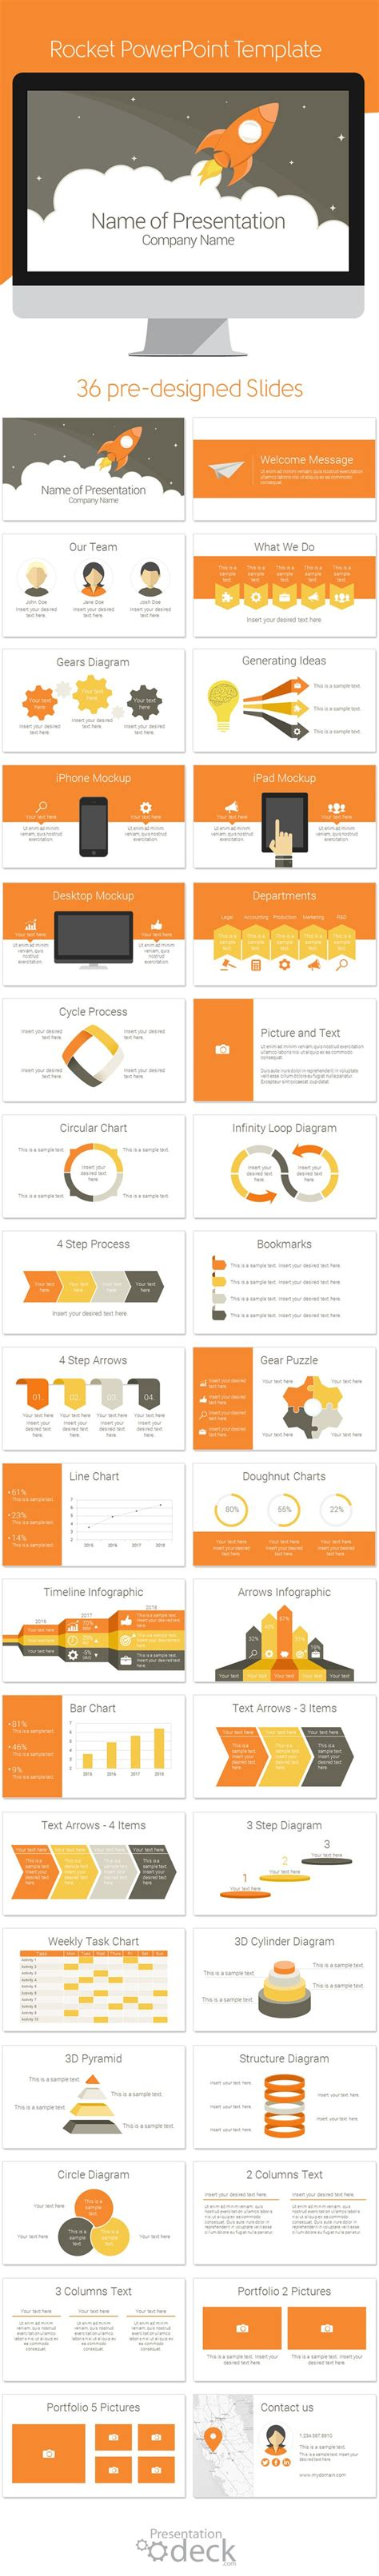 designing in indesign for powerpoint design powerpoint template indesign gallery powerpoint